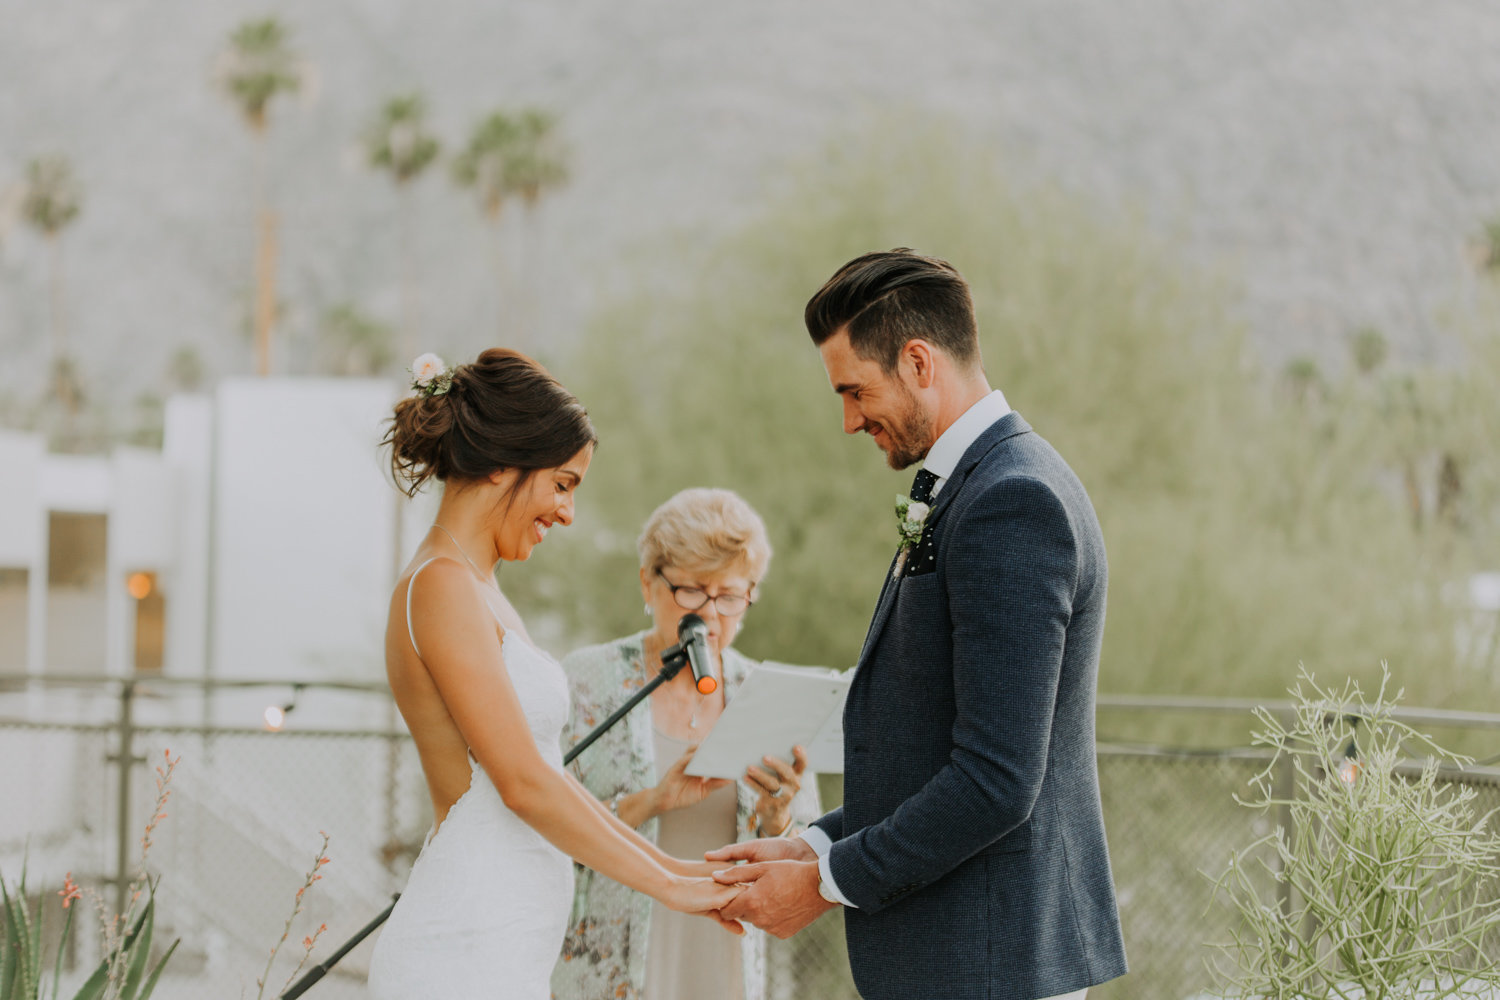 Brianna Broyles_Palm Springs Wedding Photographer_Ace Hotel Wedding_Ace Hotel Palm Springs-49